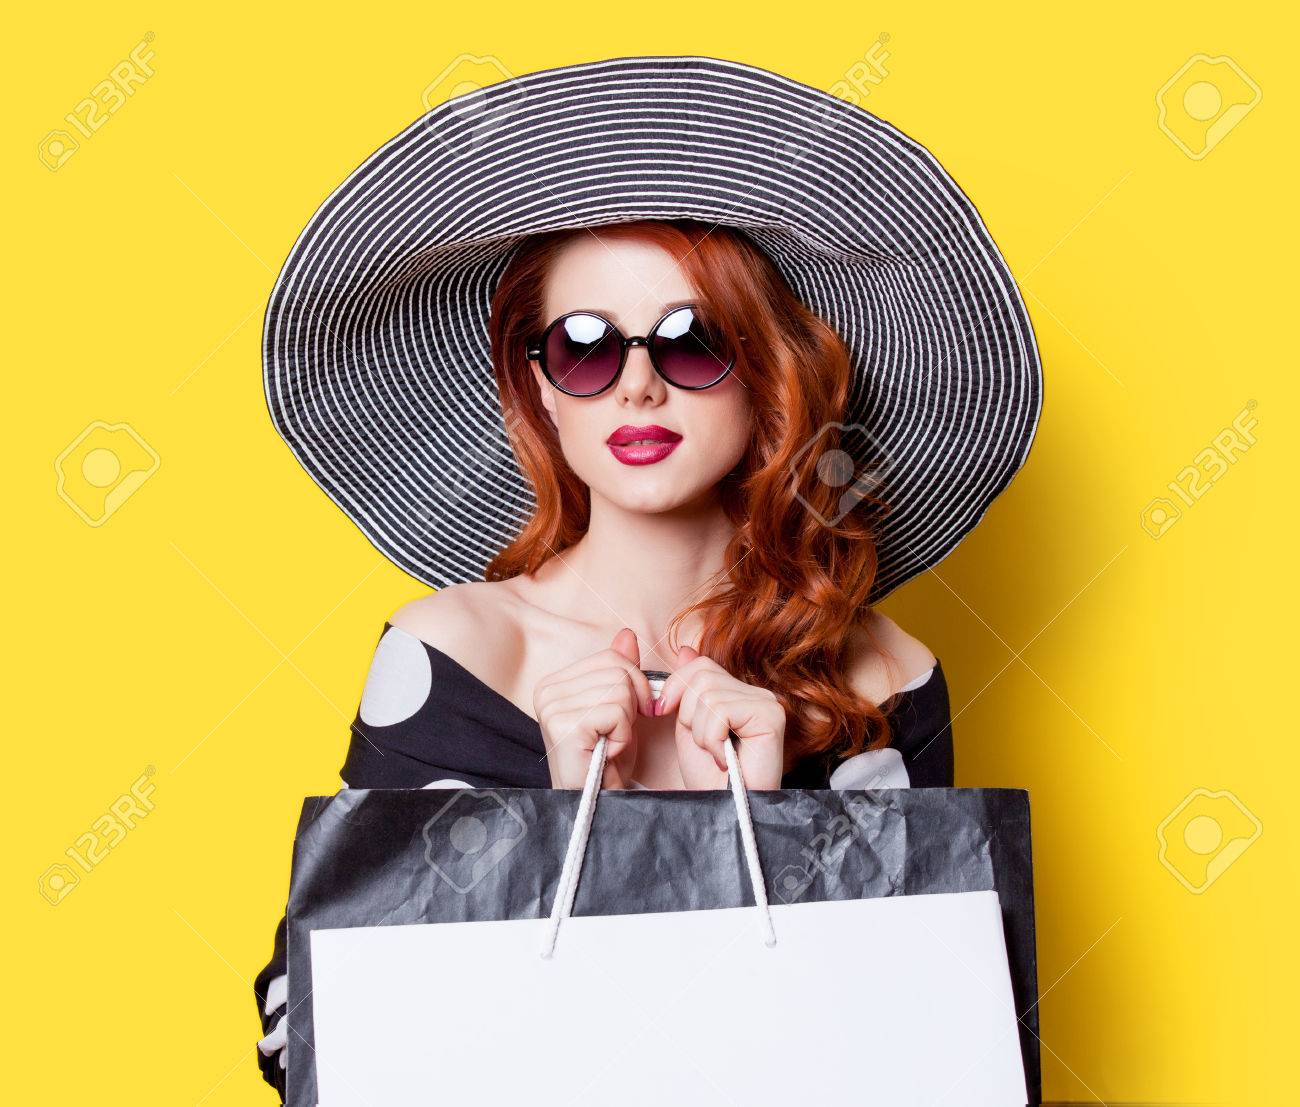 Redhead girl in black dress and hat with shopping bags on yellow background - 40455213